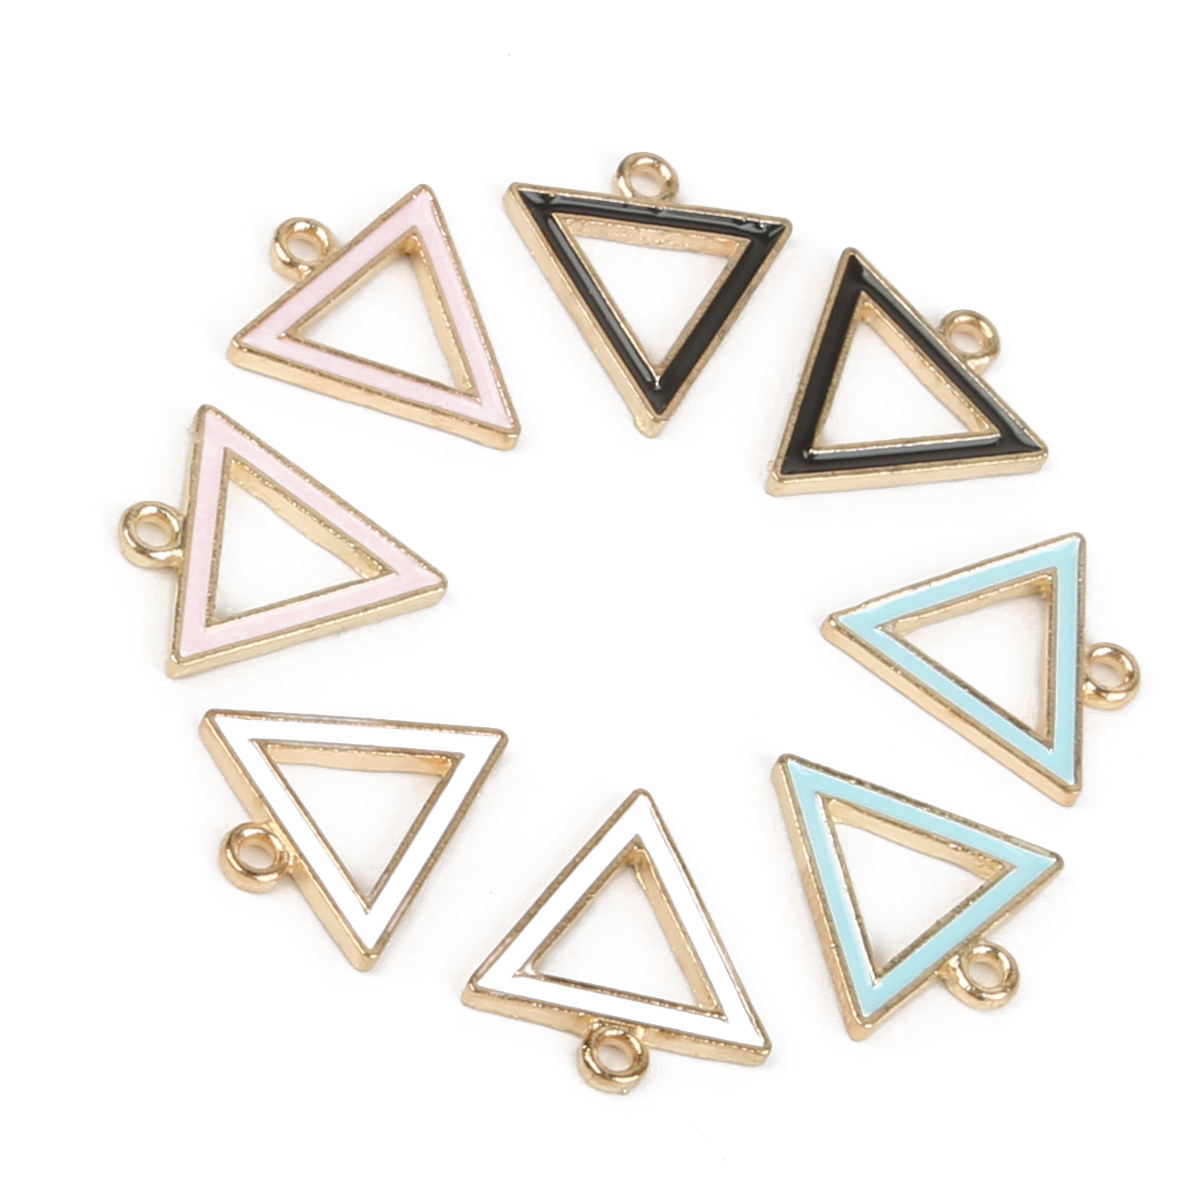 Hot 15mm Zinc Alloy Pure Color Enamel Hollow Geometric Triangle Shape Charm Pendant For DIY Earring Necklace Jewelry Findings